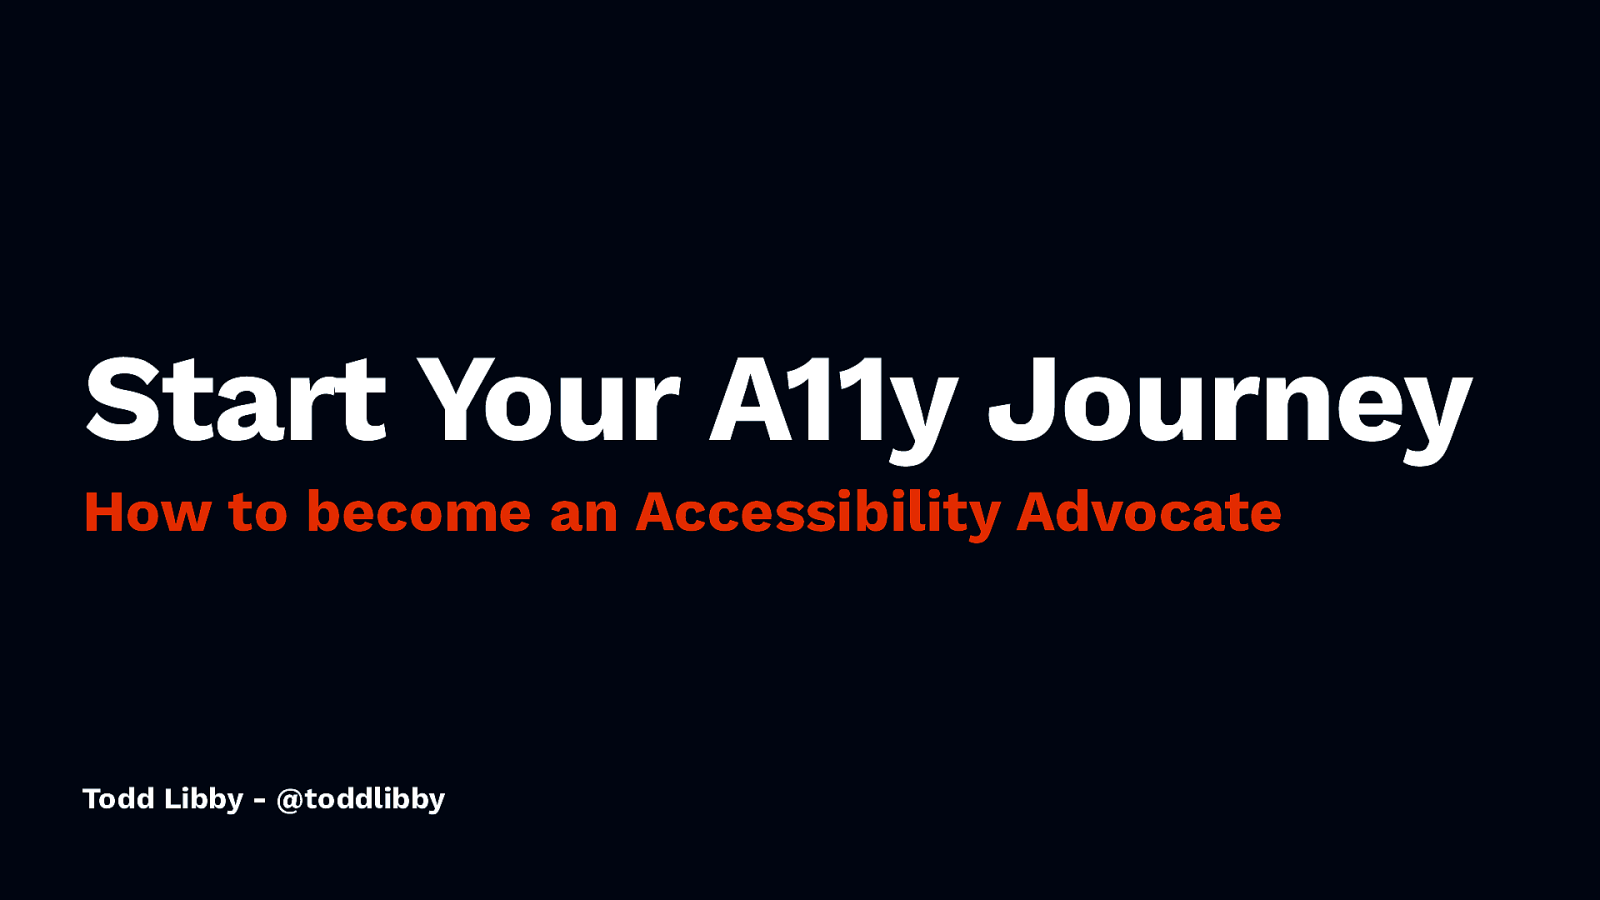 Start your A11y Journey: How to Become an Accessibility Advocate by Todd Libby